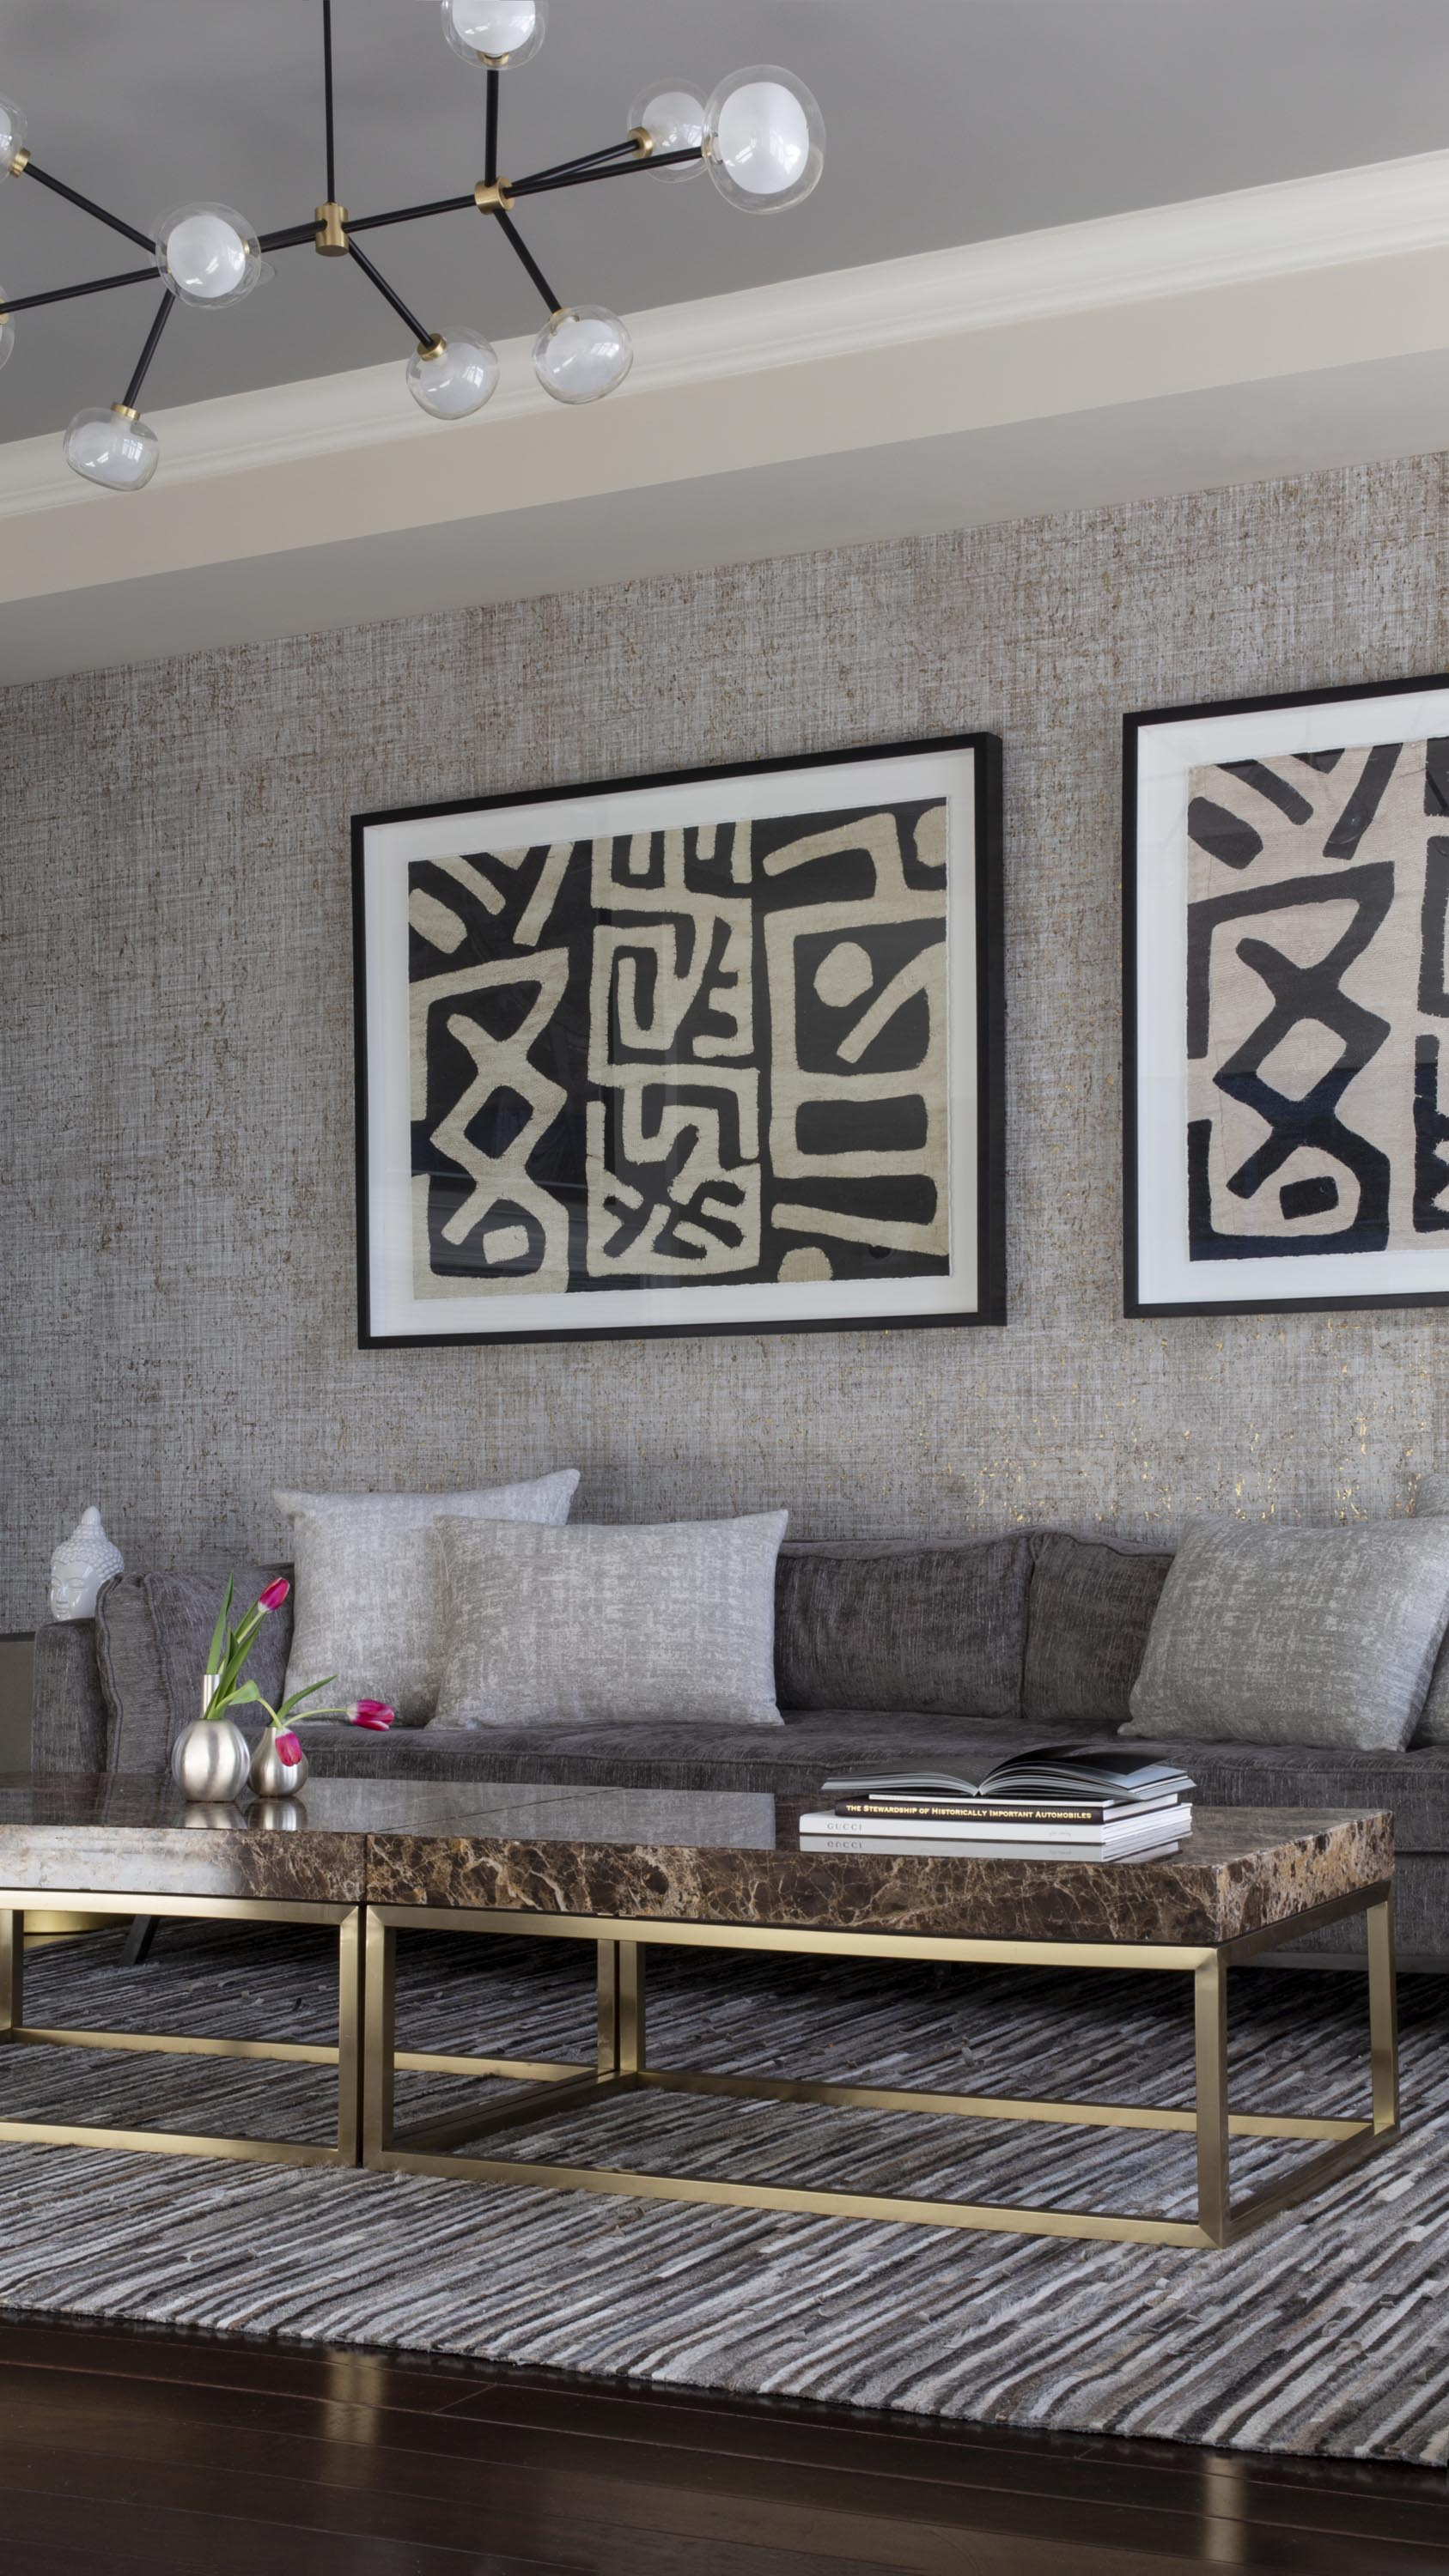 Living room with center table, sofa, custom chandelier and artworks on the wall